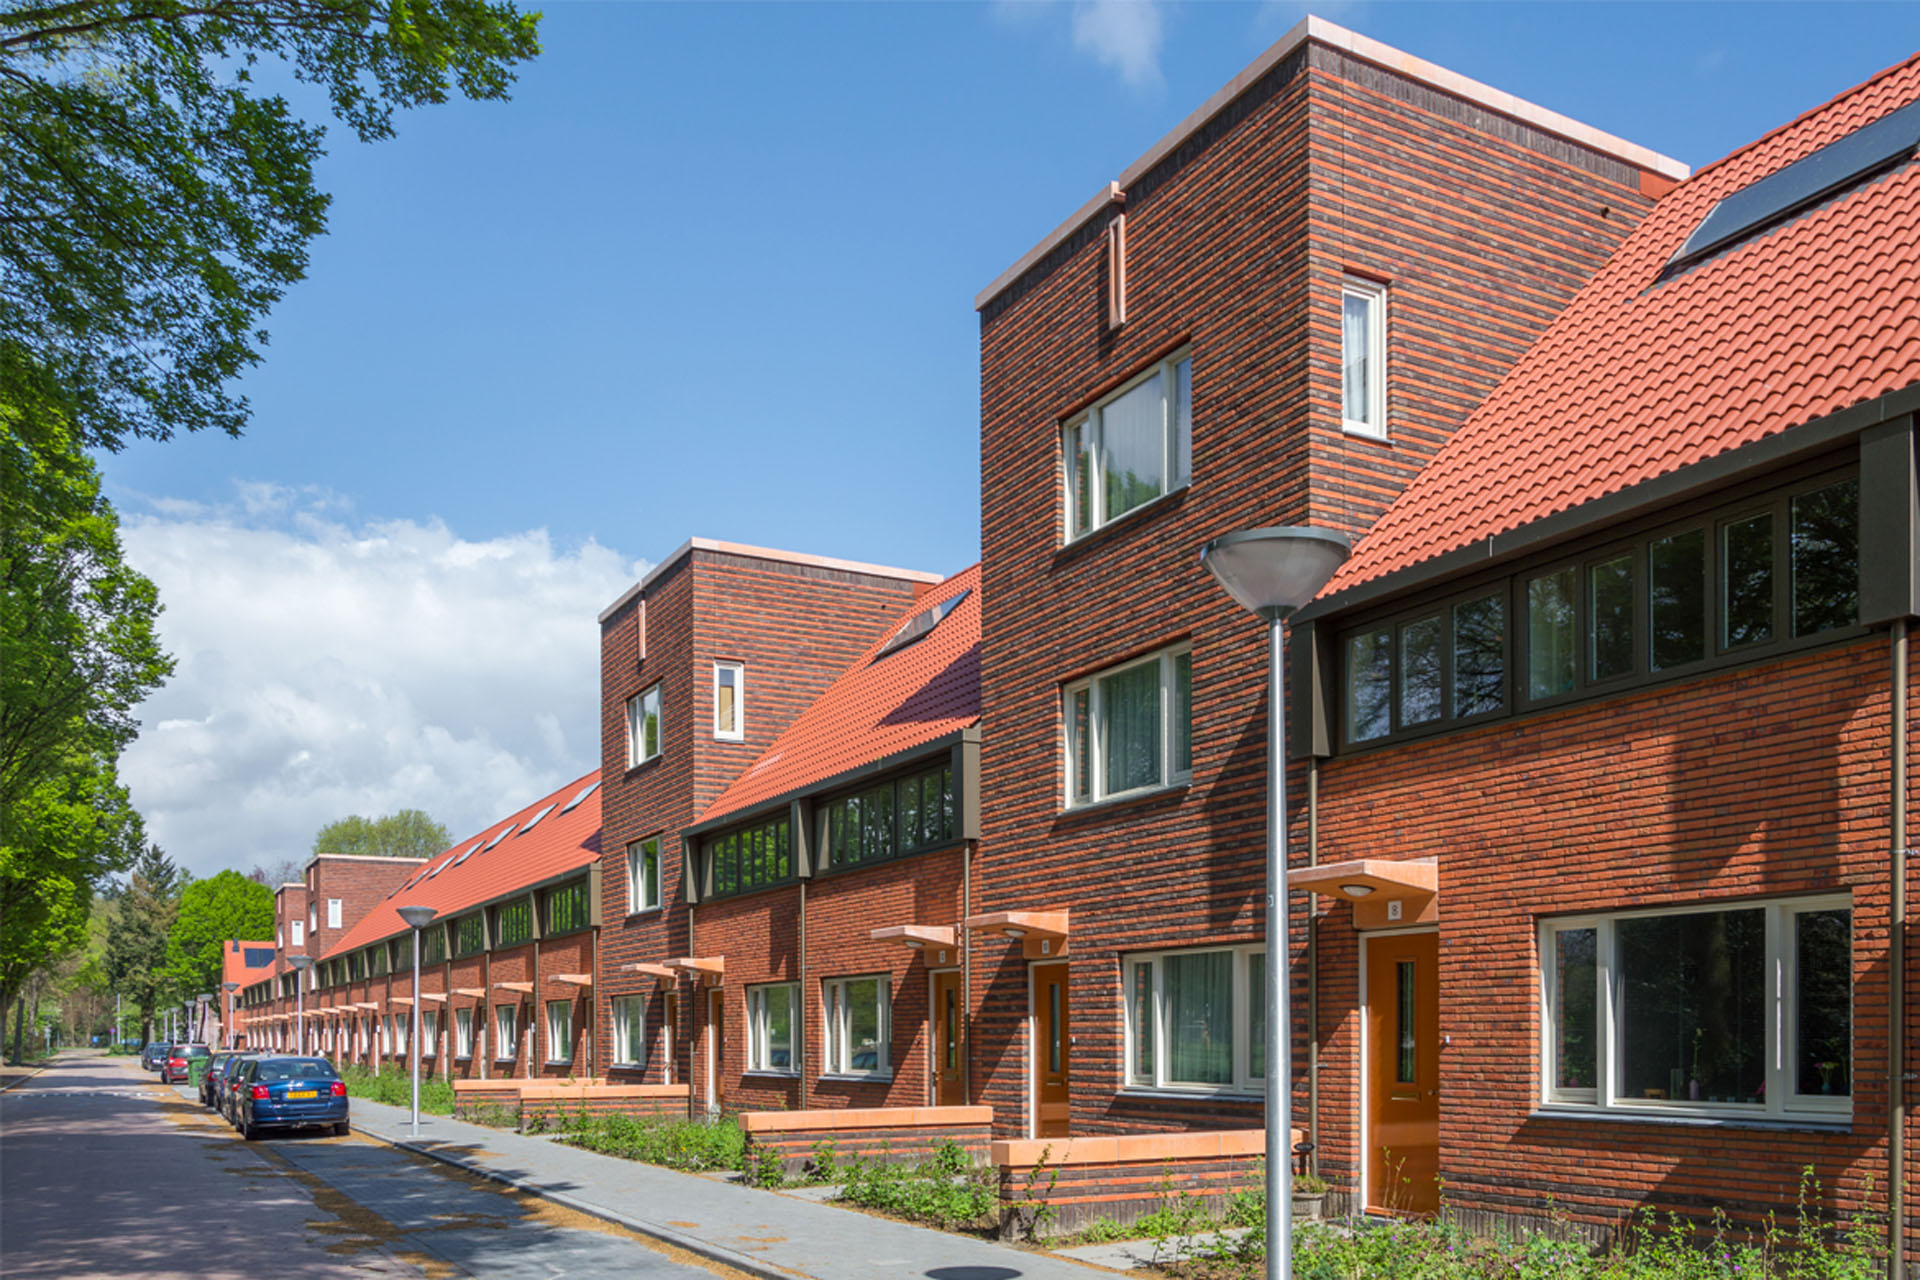 Project Dorp 040 in Eindhoven